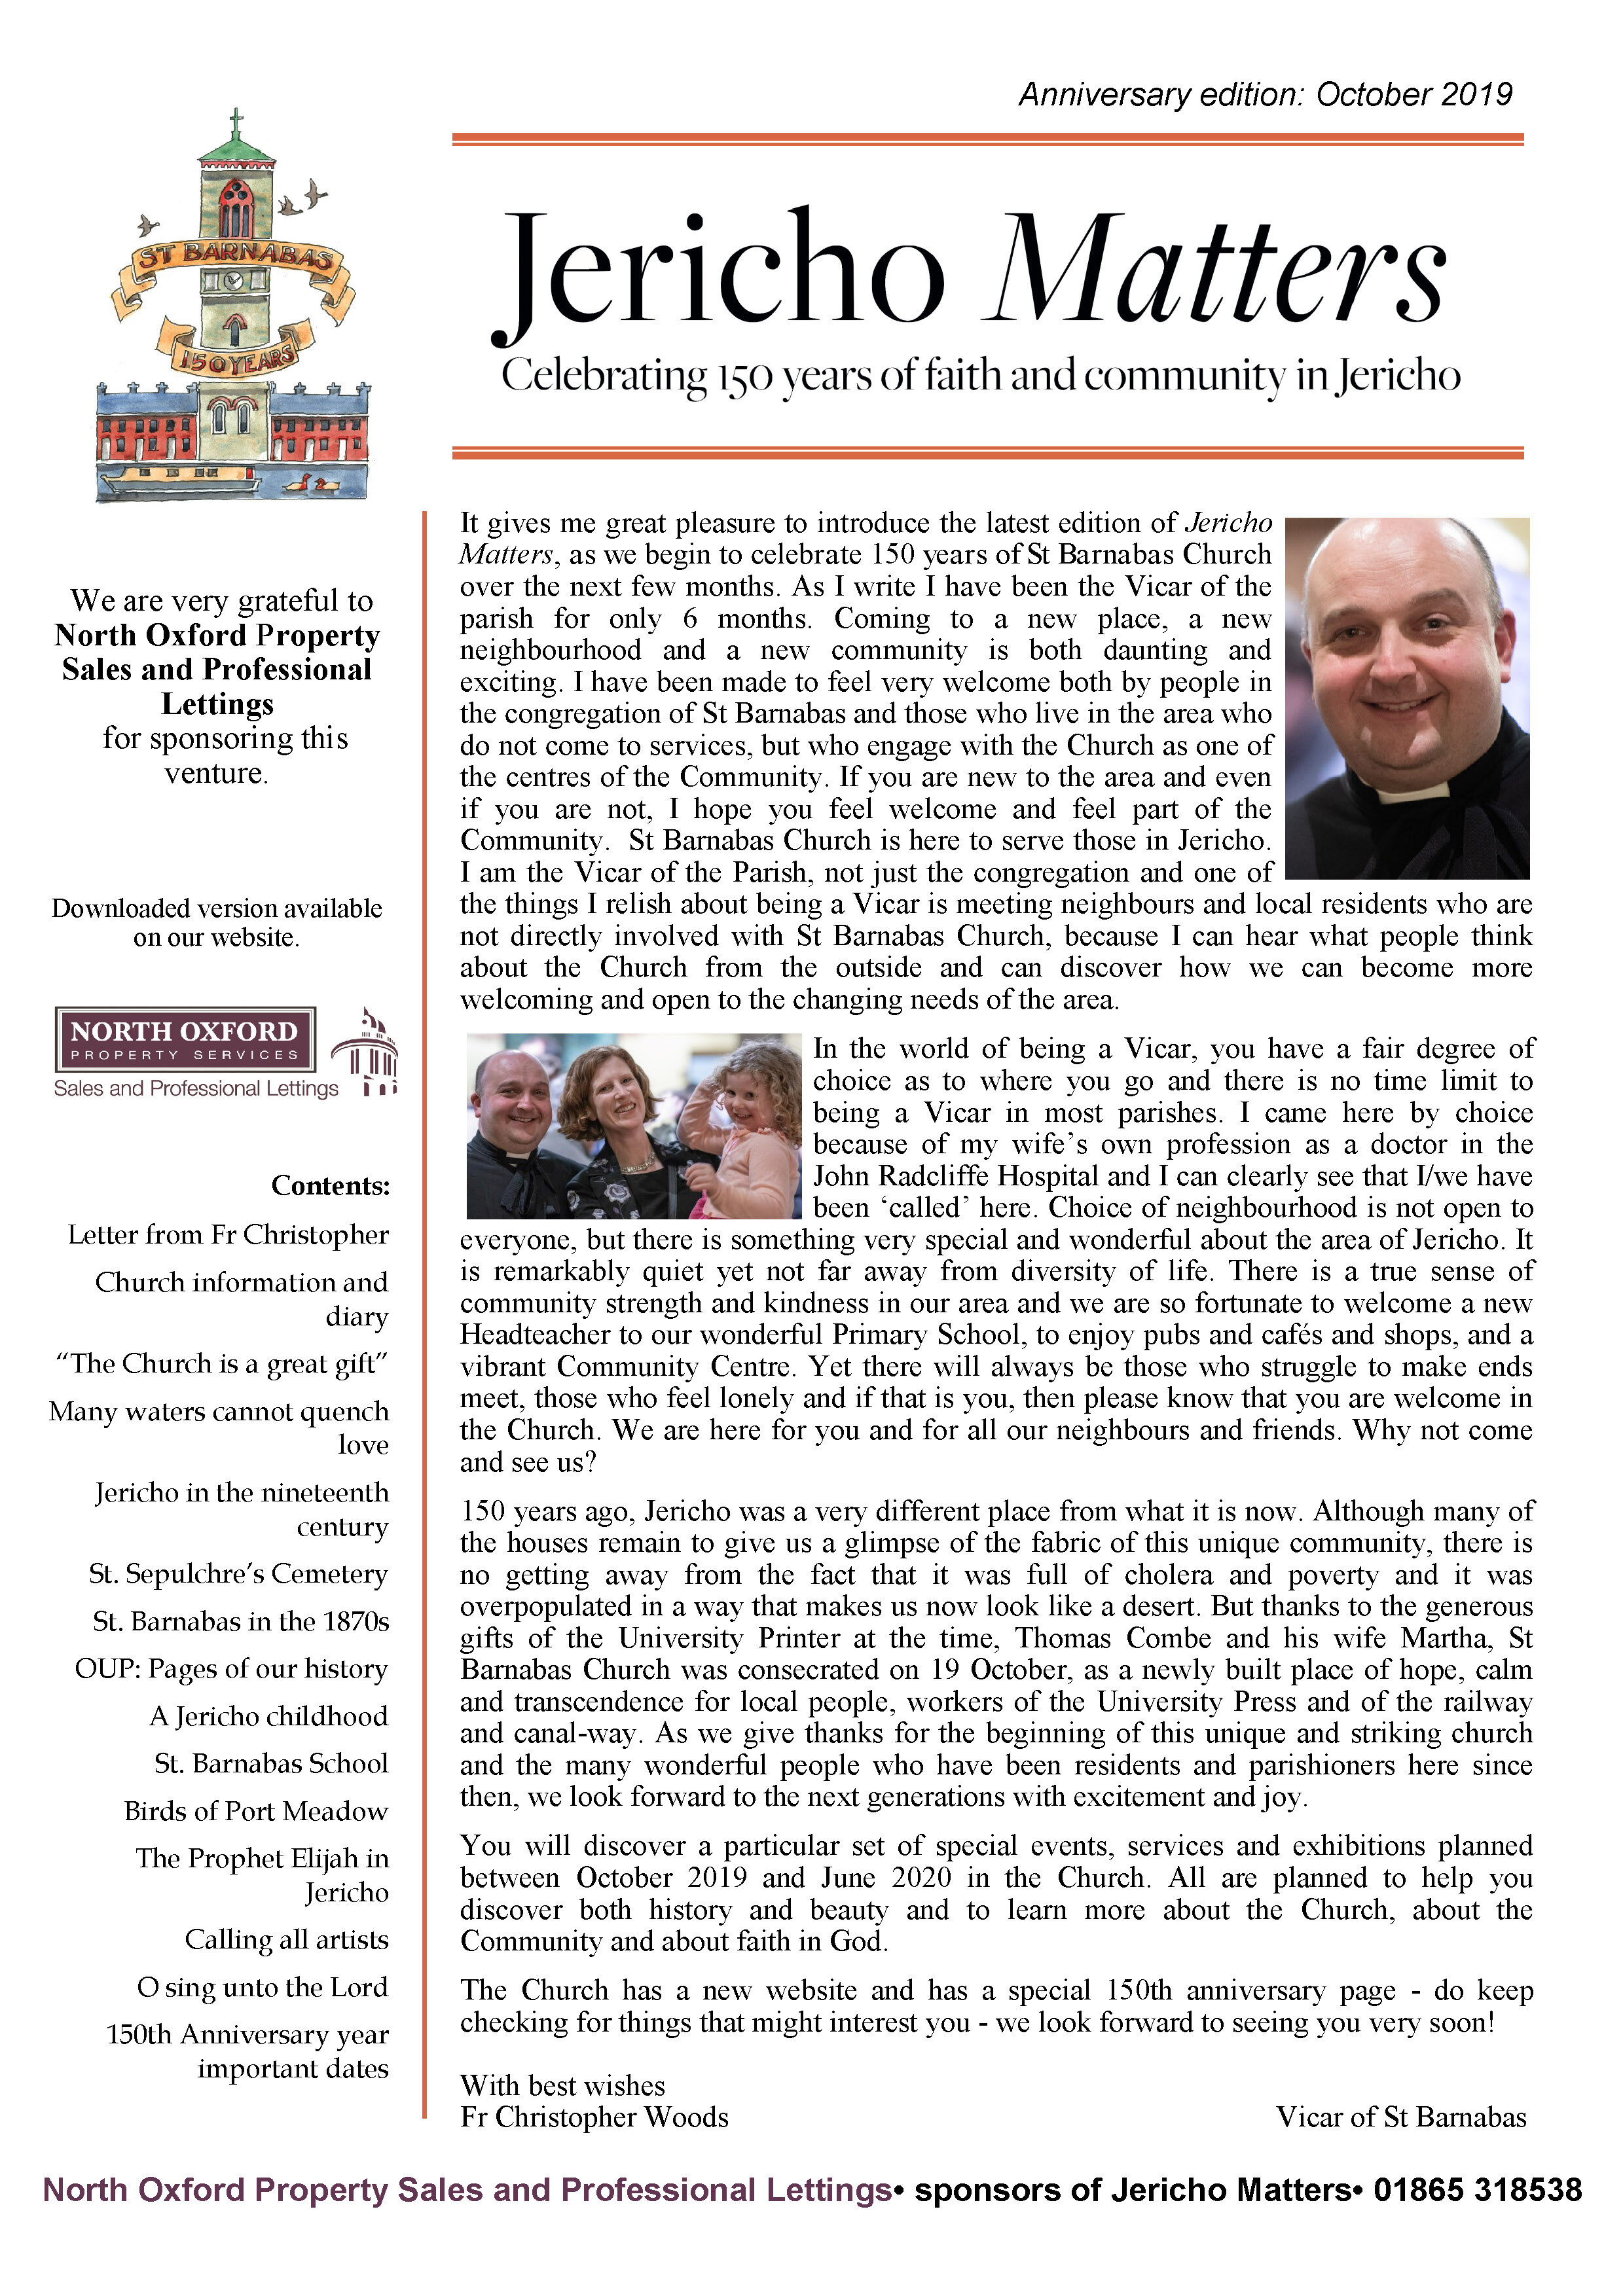 Click on the image to download the PDF edition of Jericho Matters